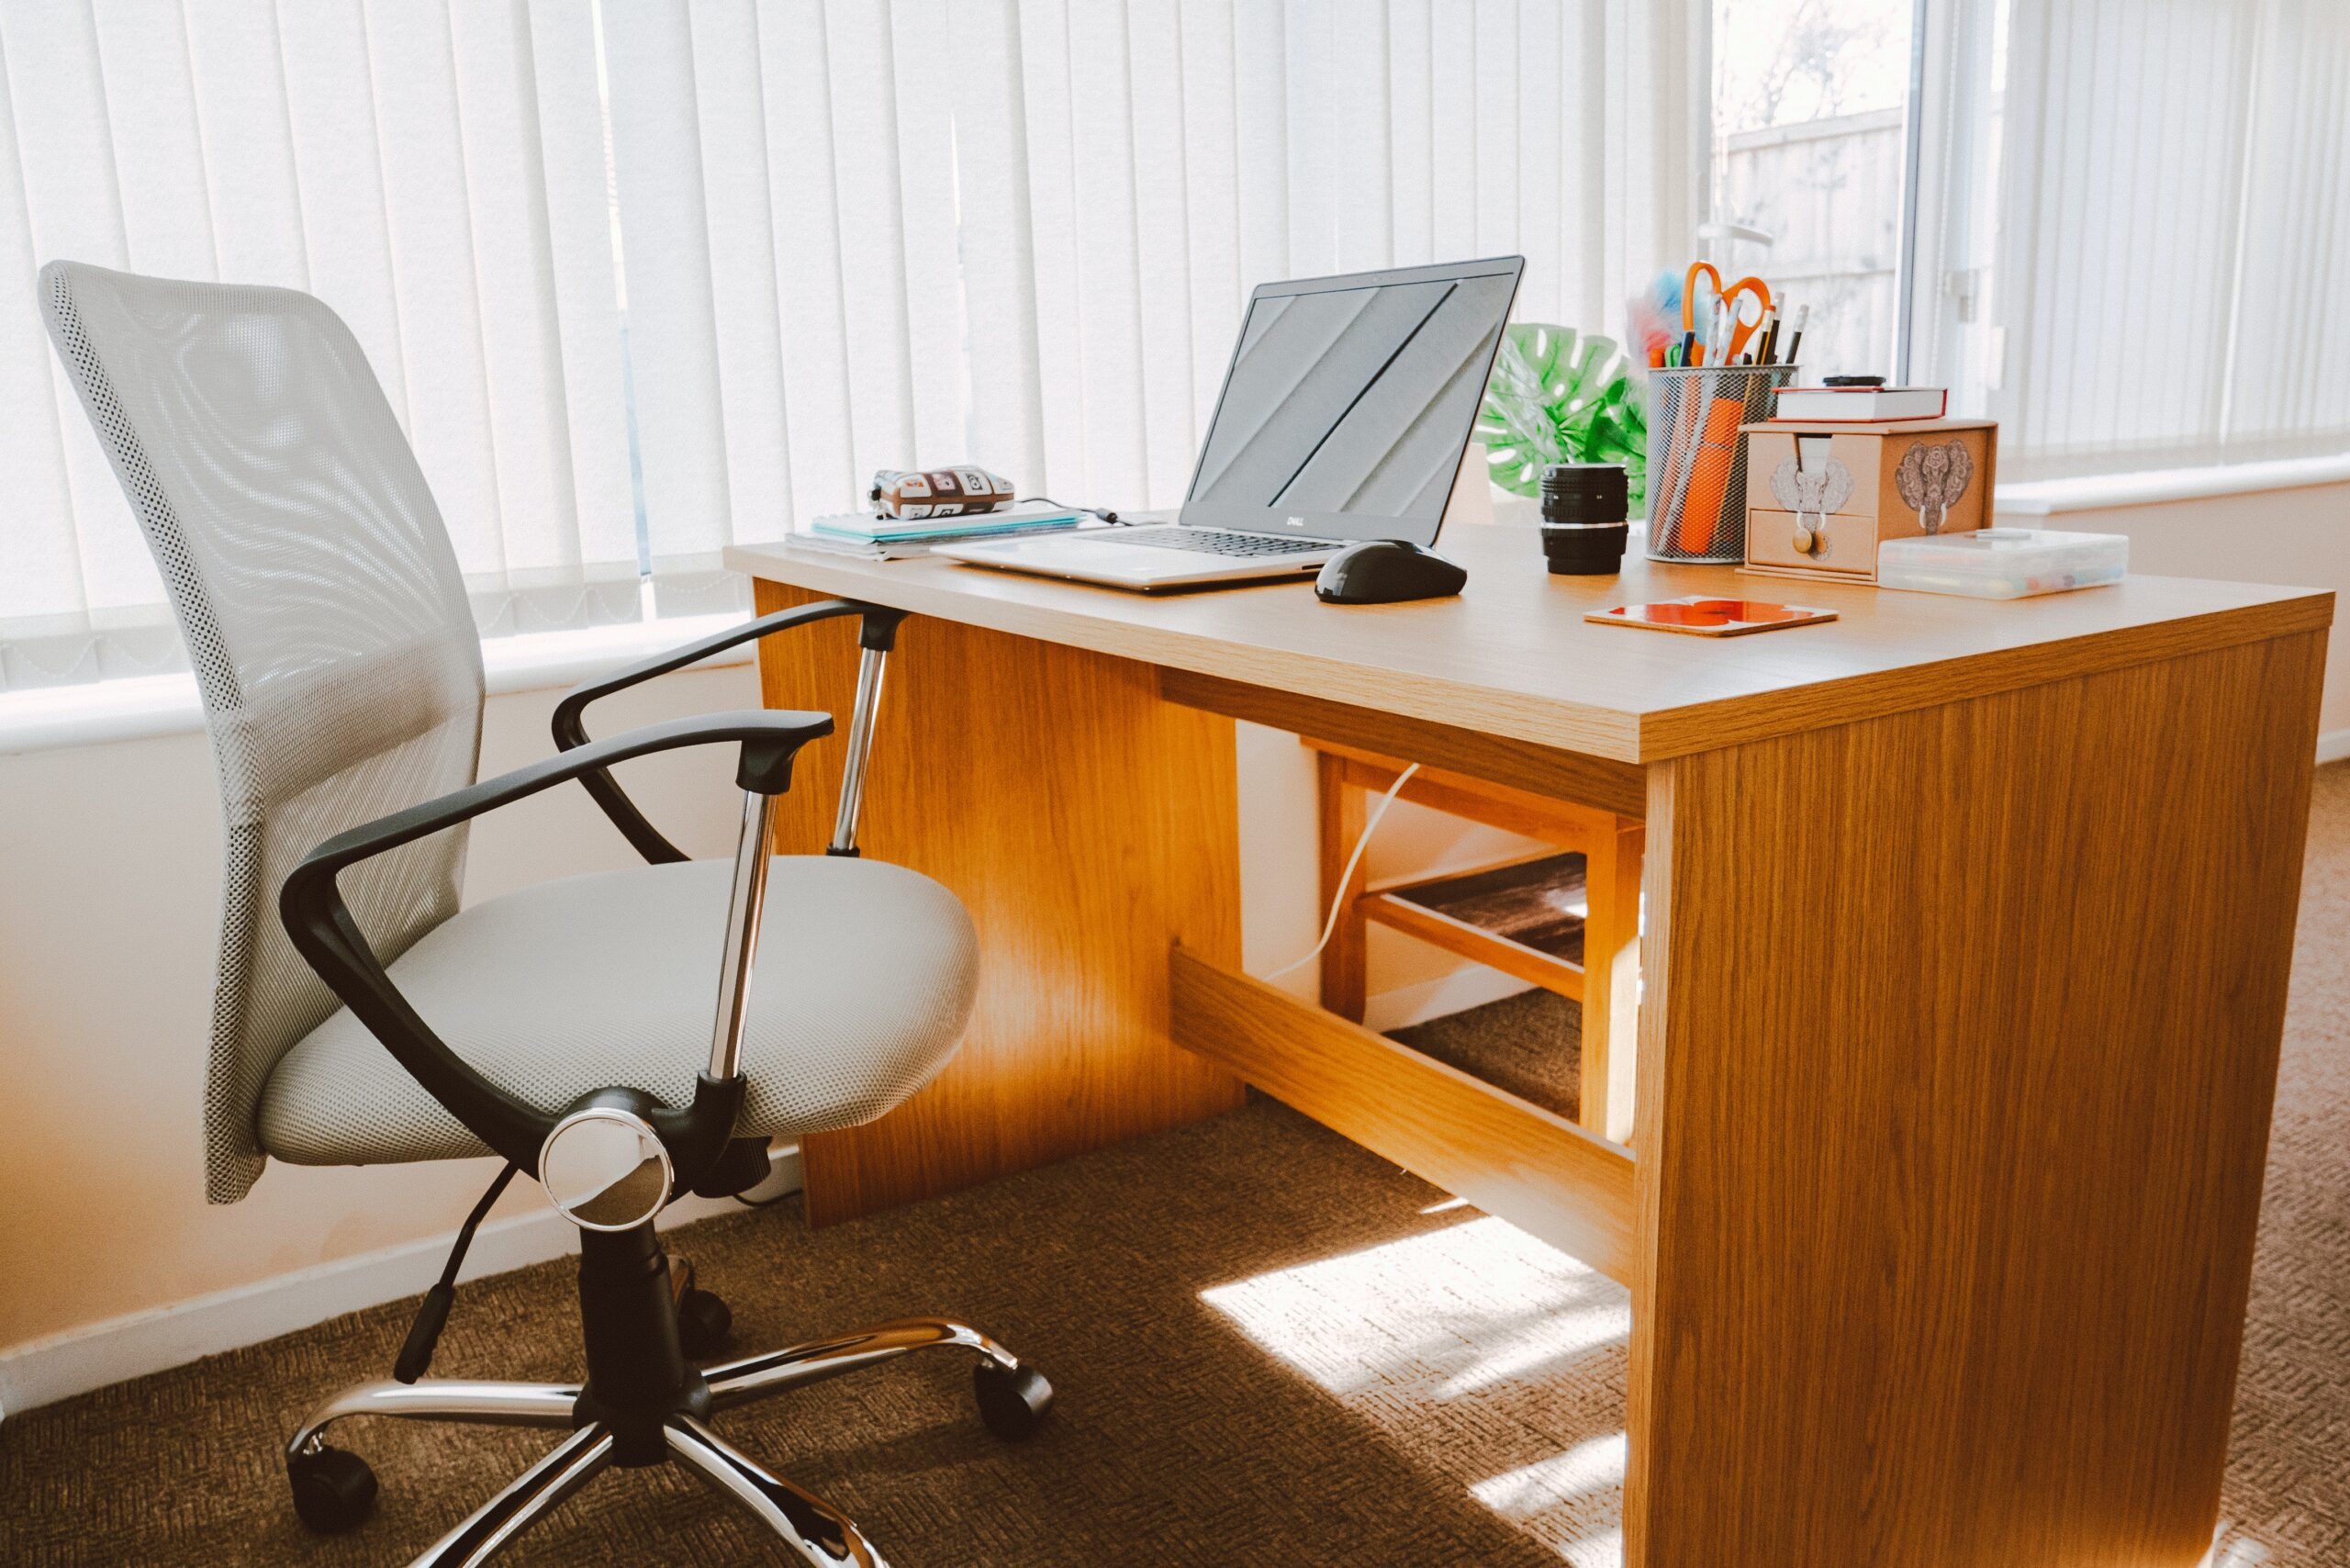 Office Tips to Make You More Comfortable